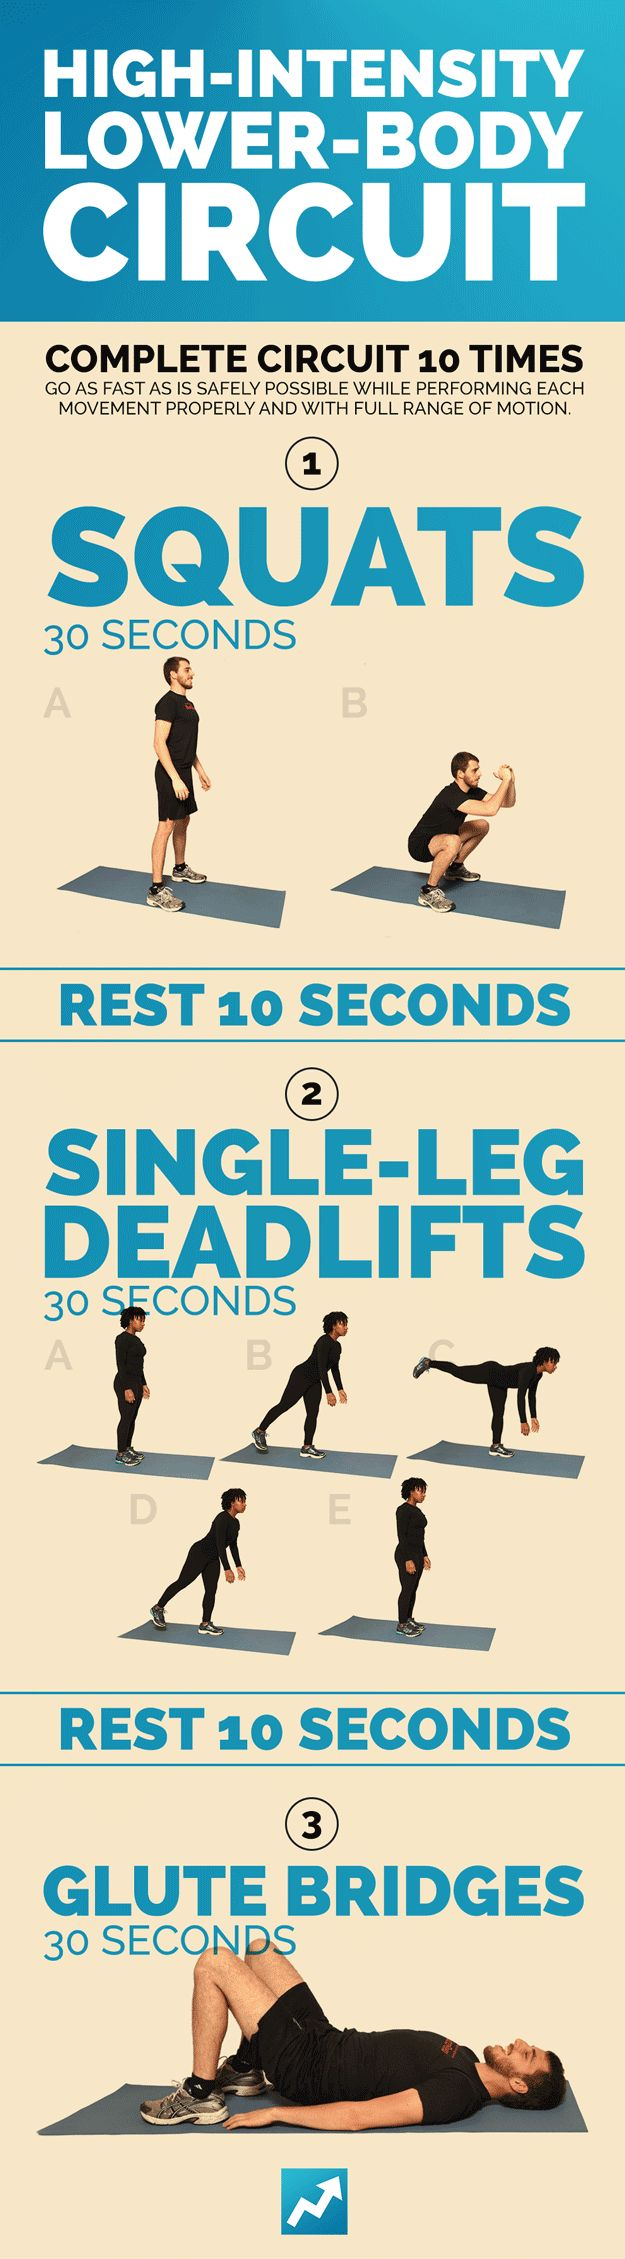 Lower-Body Workout: | Take BuzzFeed's Get Fit Challenge, Then Take Over The World